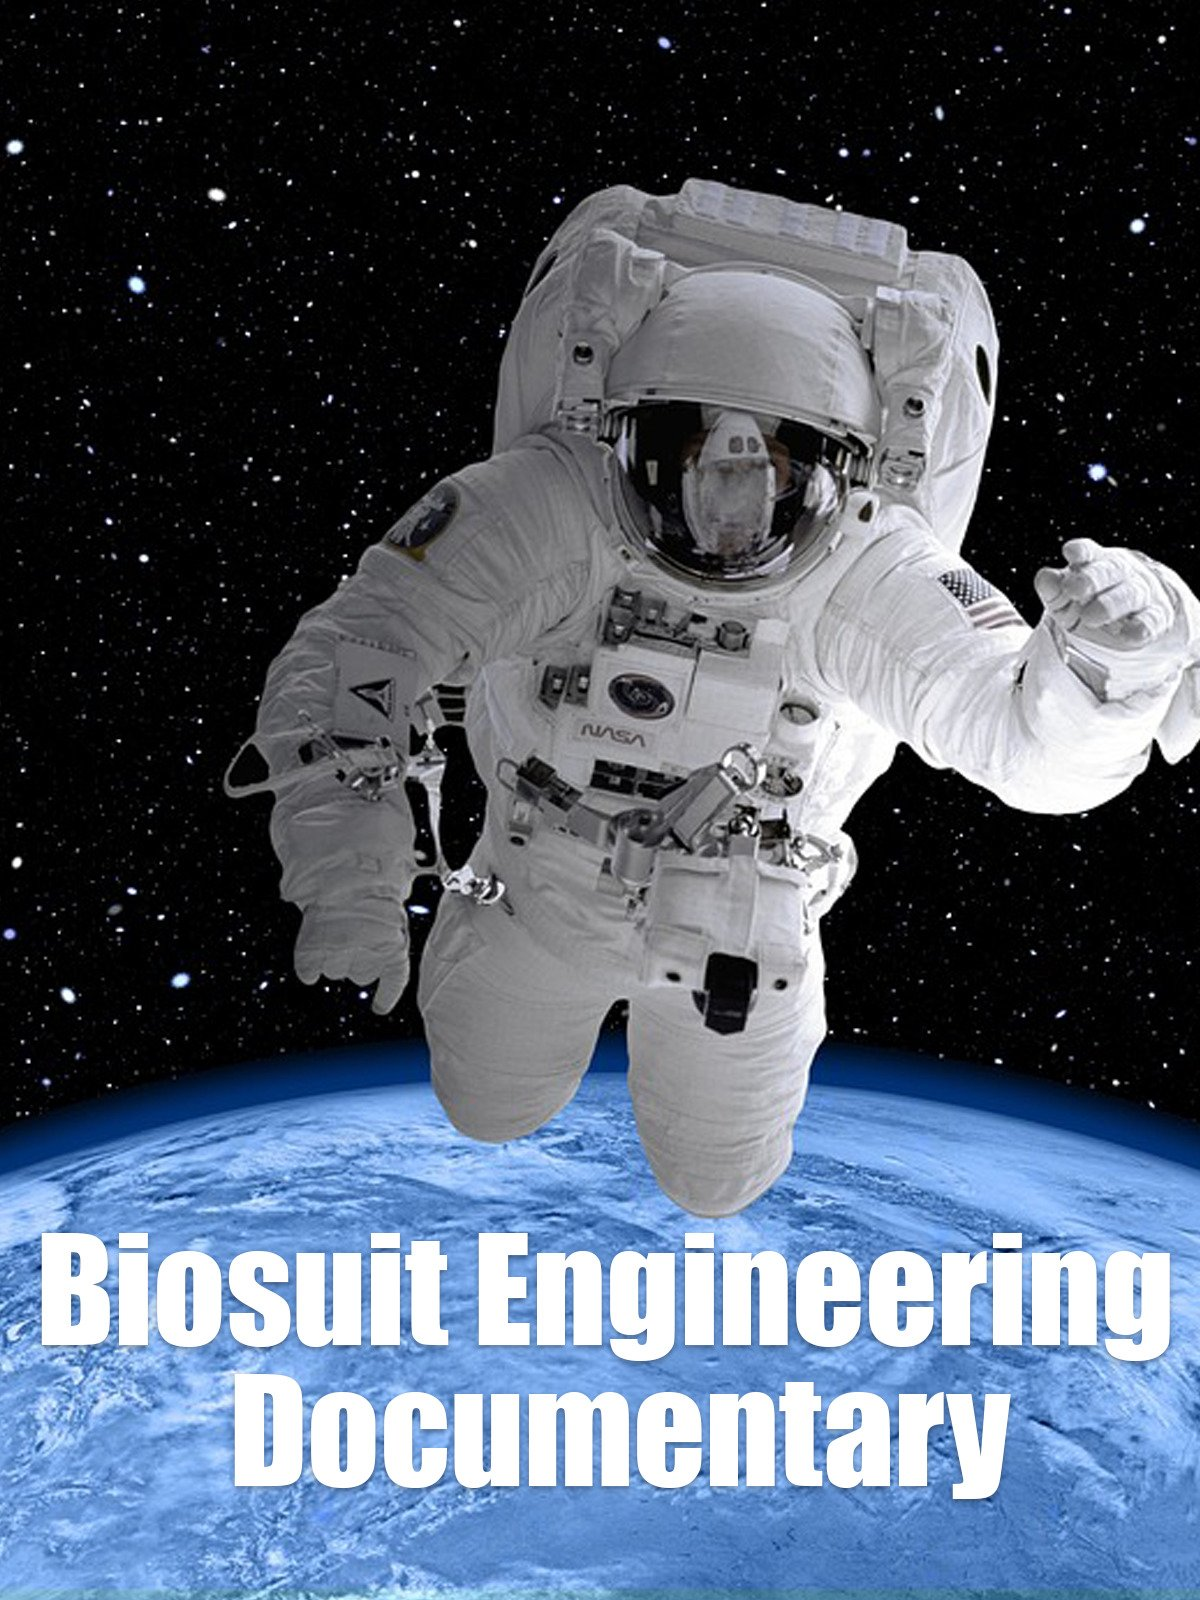 Biosuit Engineering: Documentary